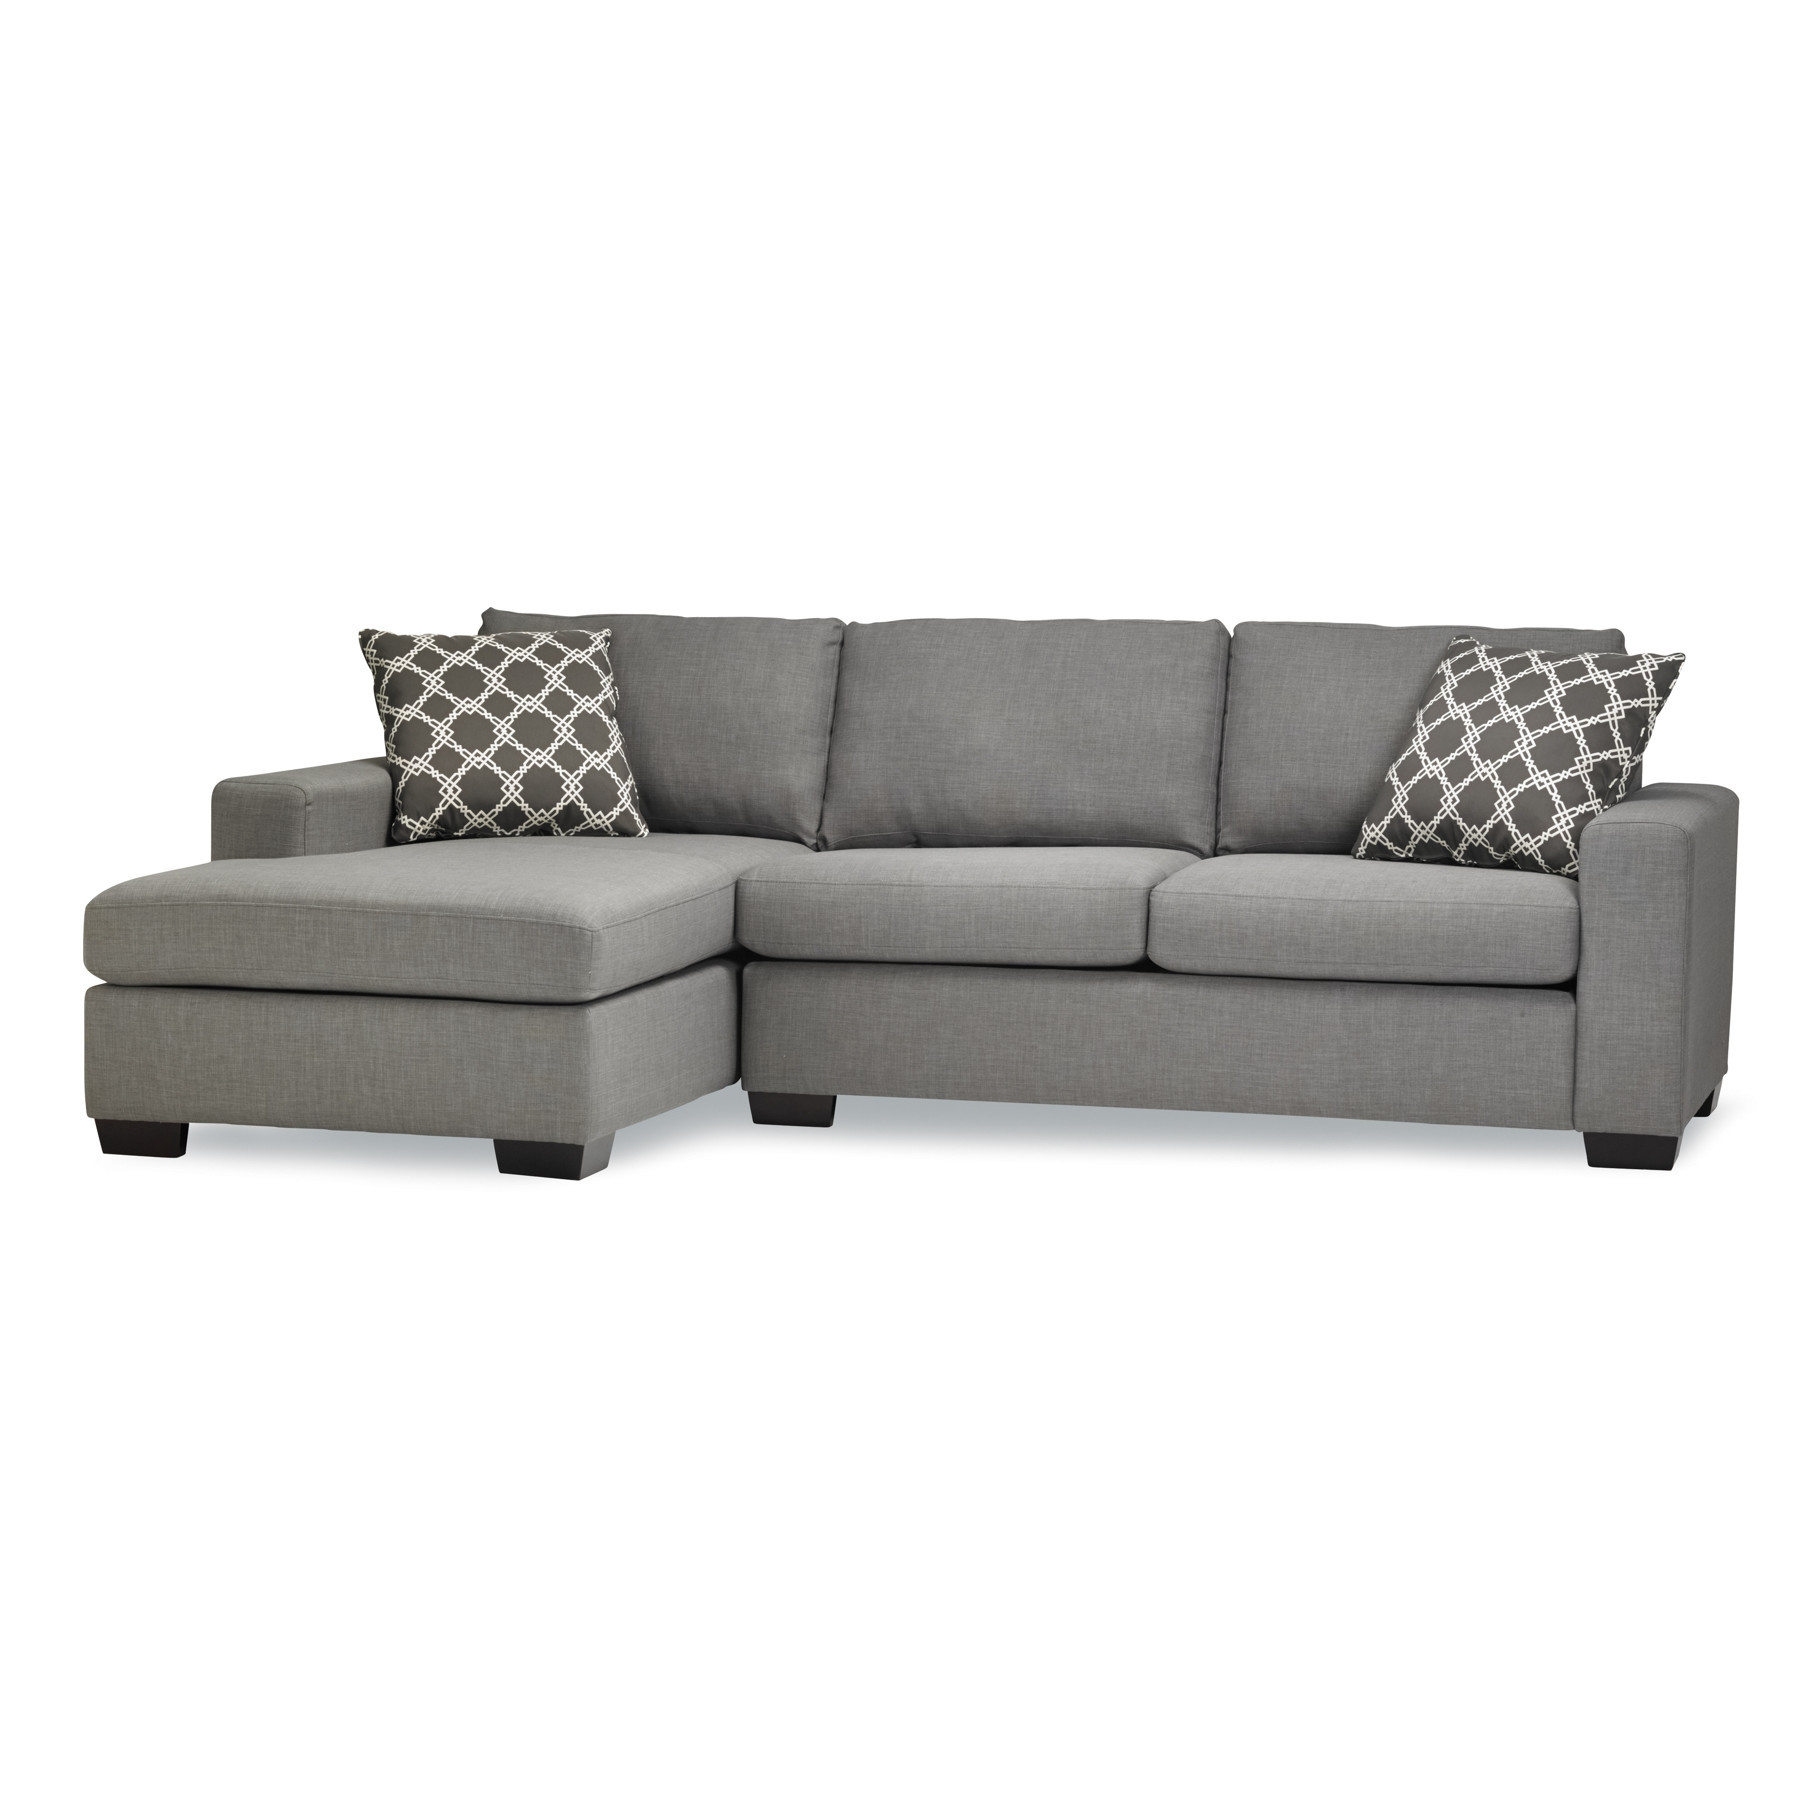 Best ideas about Sofa Sleeper Sectional . Save or Pin Sofas to Go Mimi Sleeper Sectional & Reviews Now.